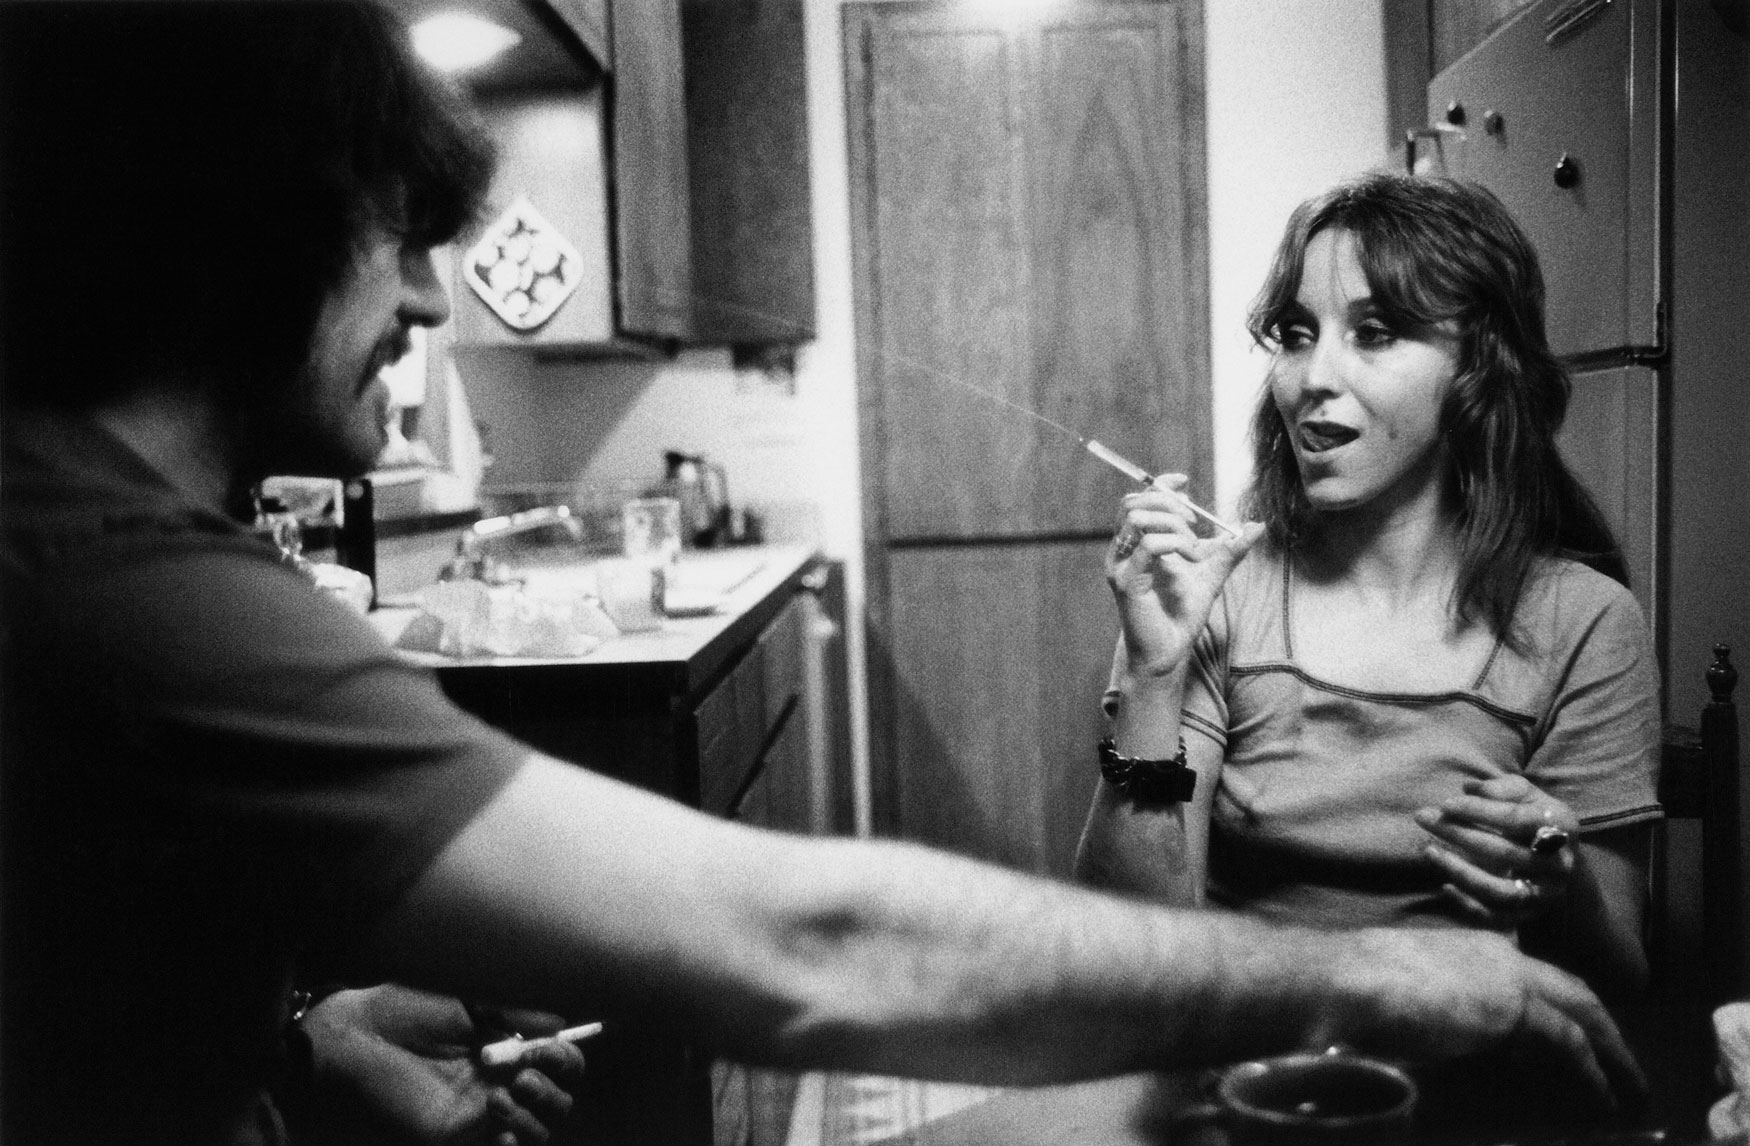 Jack and Lynn Johnson, Oklahoma City, 1973. Courtesy of Larry Clark, Luhring Augustine, New York & Simon Lee Gallery, London/Hong Kong.